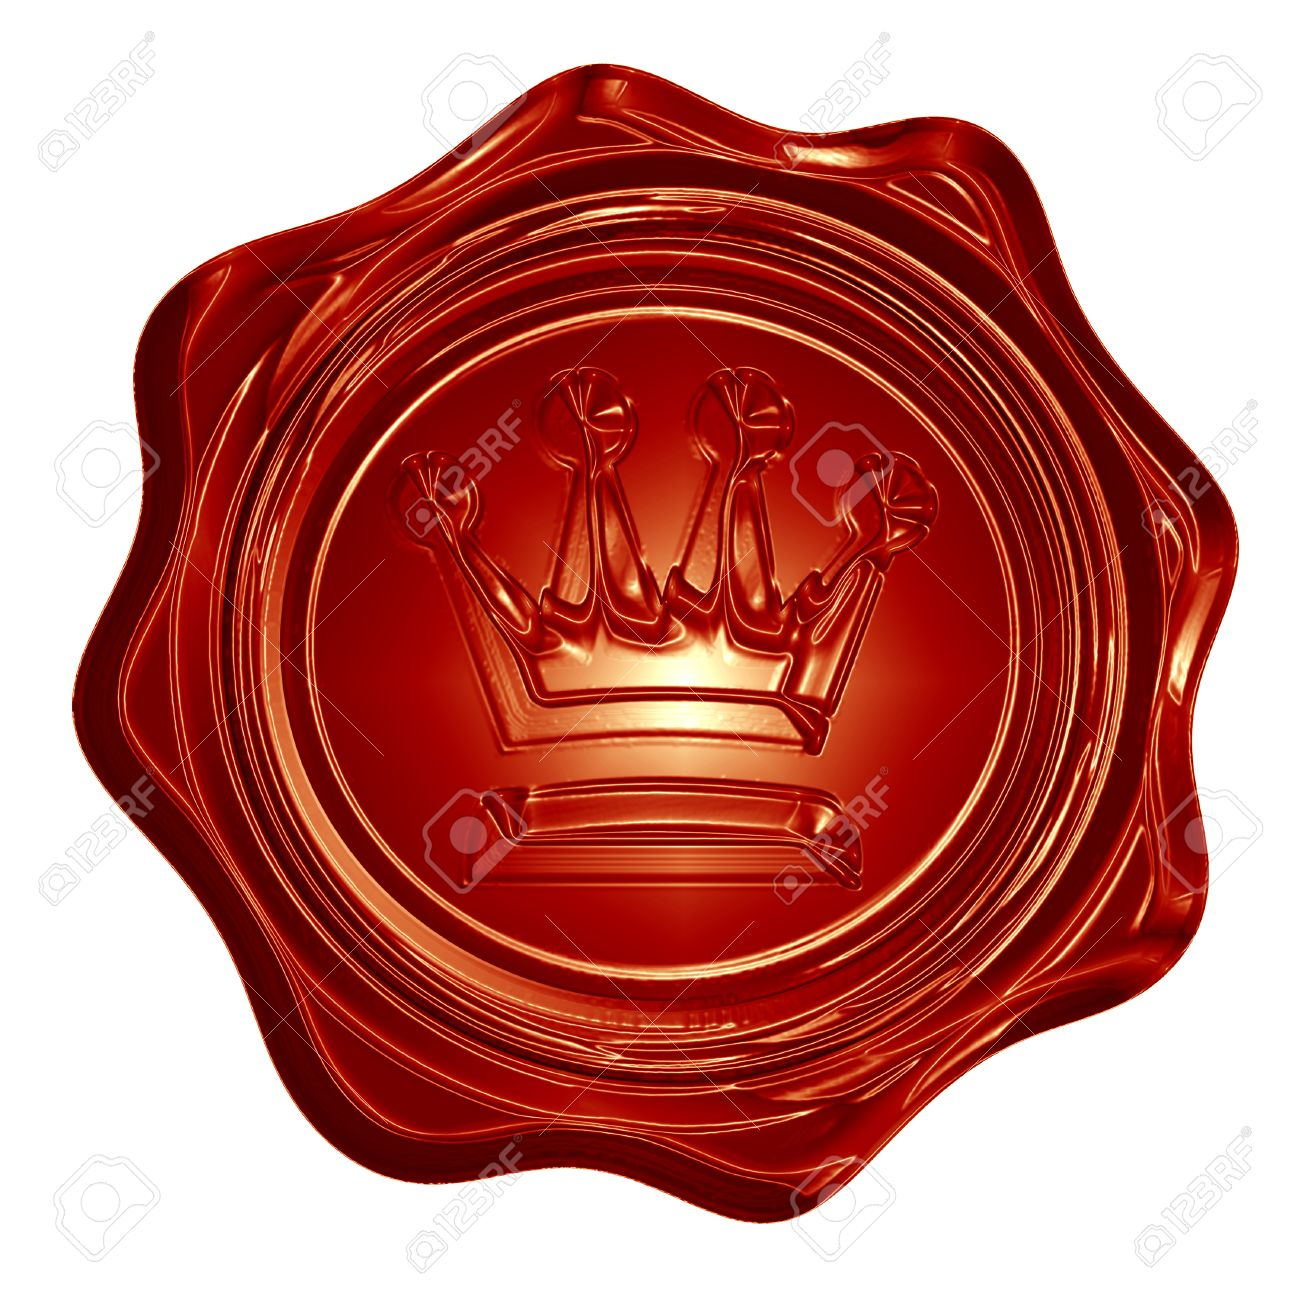 Royal Wax Seal With A Crown On It Stock Photo Picture And Royalty Free Image Image 23000036